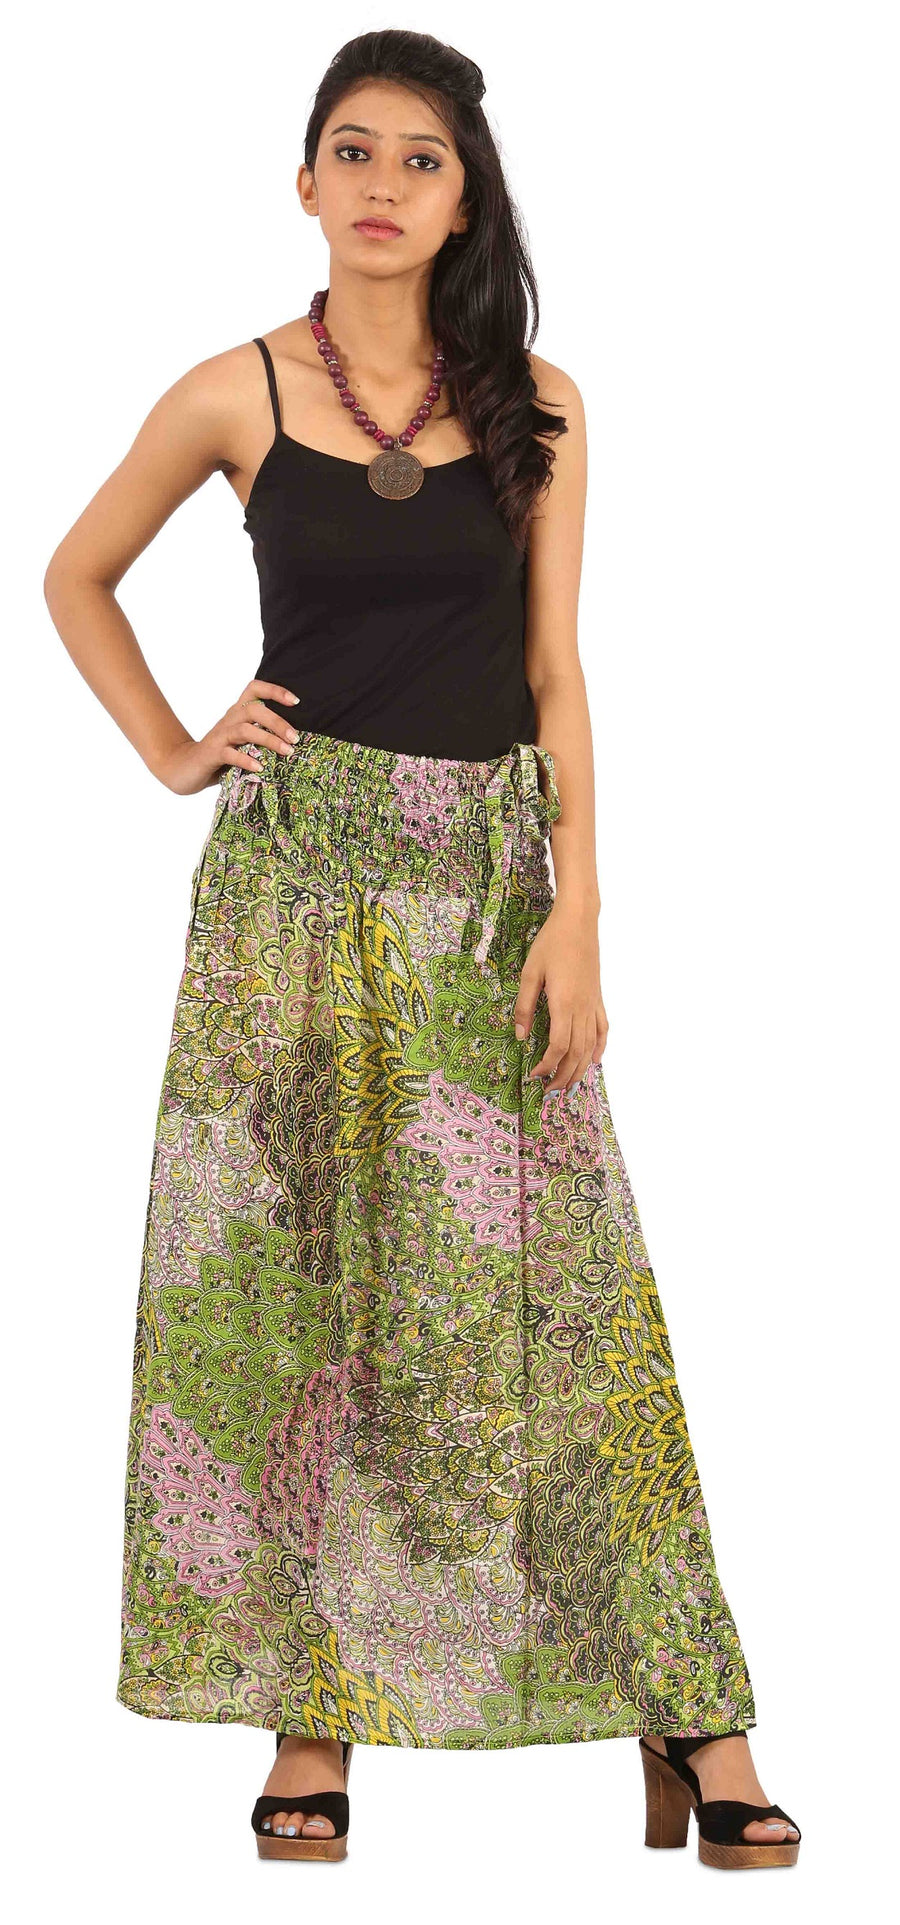 Green Skirt, Skirts For Women, Wrap Around Skirt, High Waisted Skirt, Long Maxi Skirt, Skirts Online, Summer Skirts, Long Skirt, Cute Skirts, Cotton Skirts,Full Skirt, Long Summer Skirts,  Buy Skirts Onlin